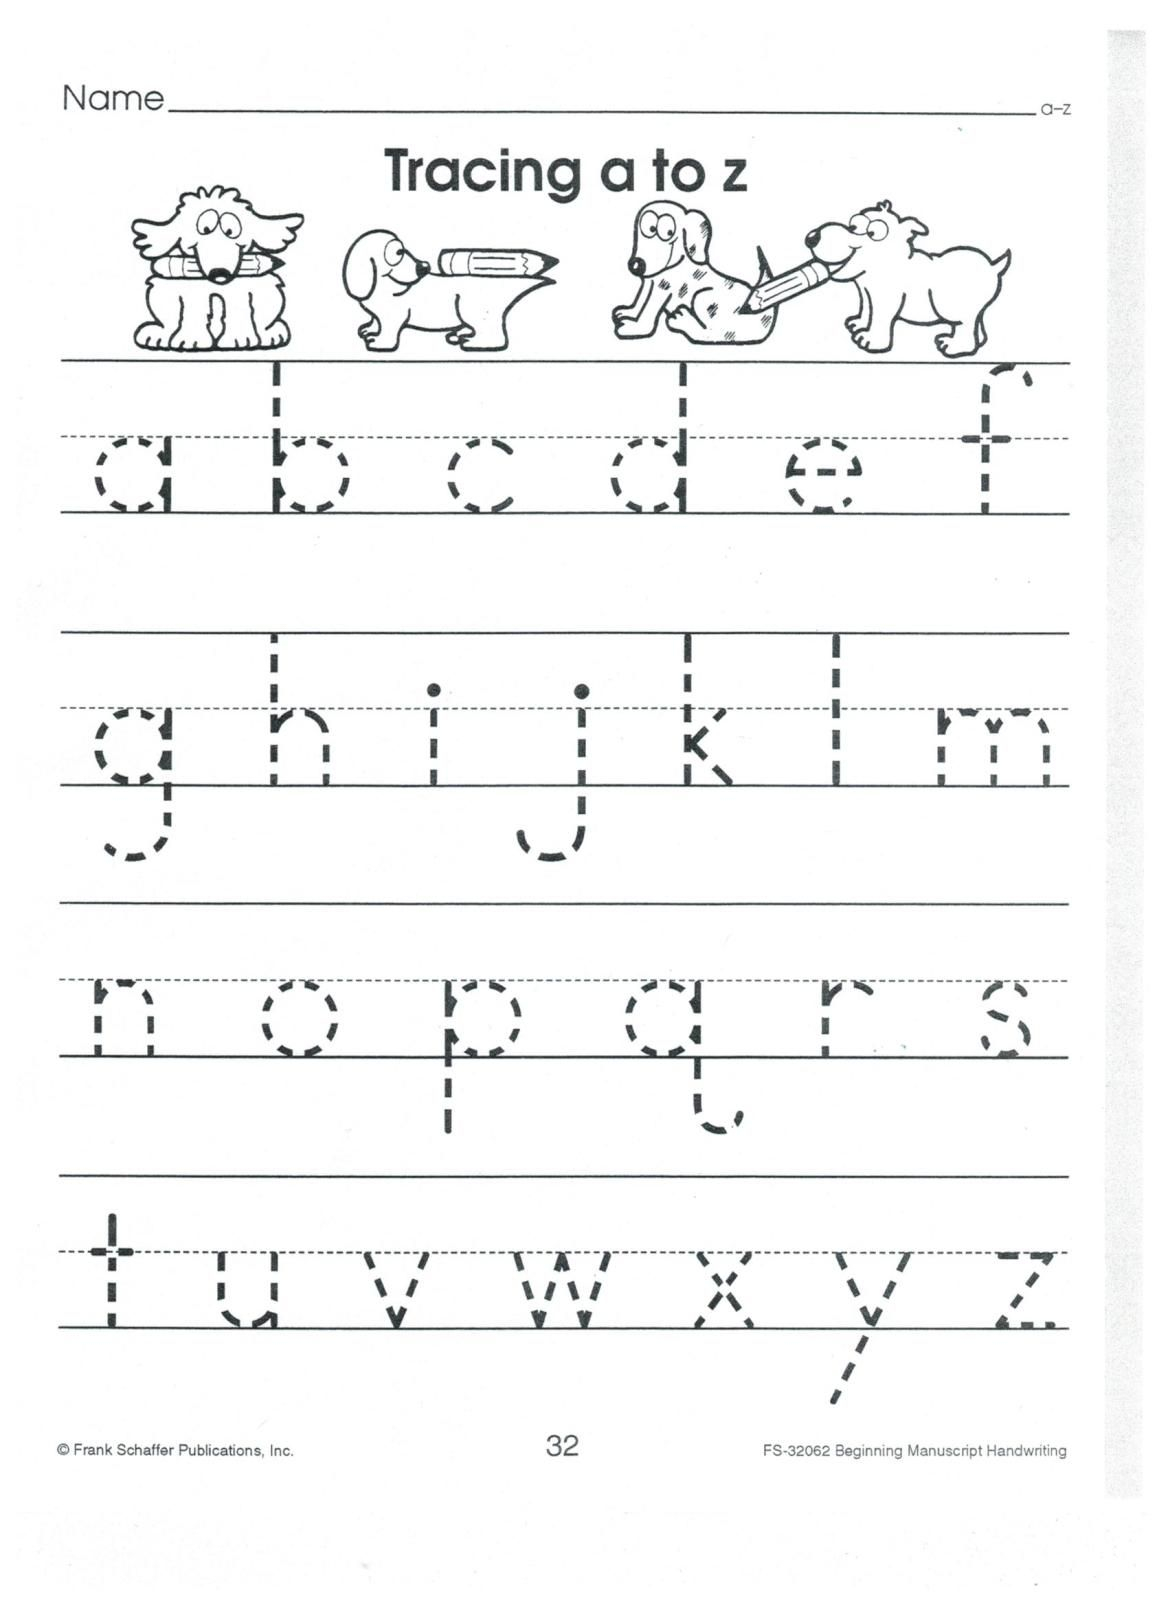 English Print Abc A To Z Lower Case 001 | Alphabet Tracing